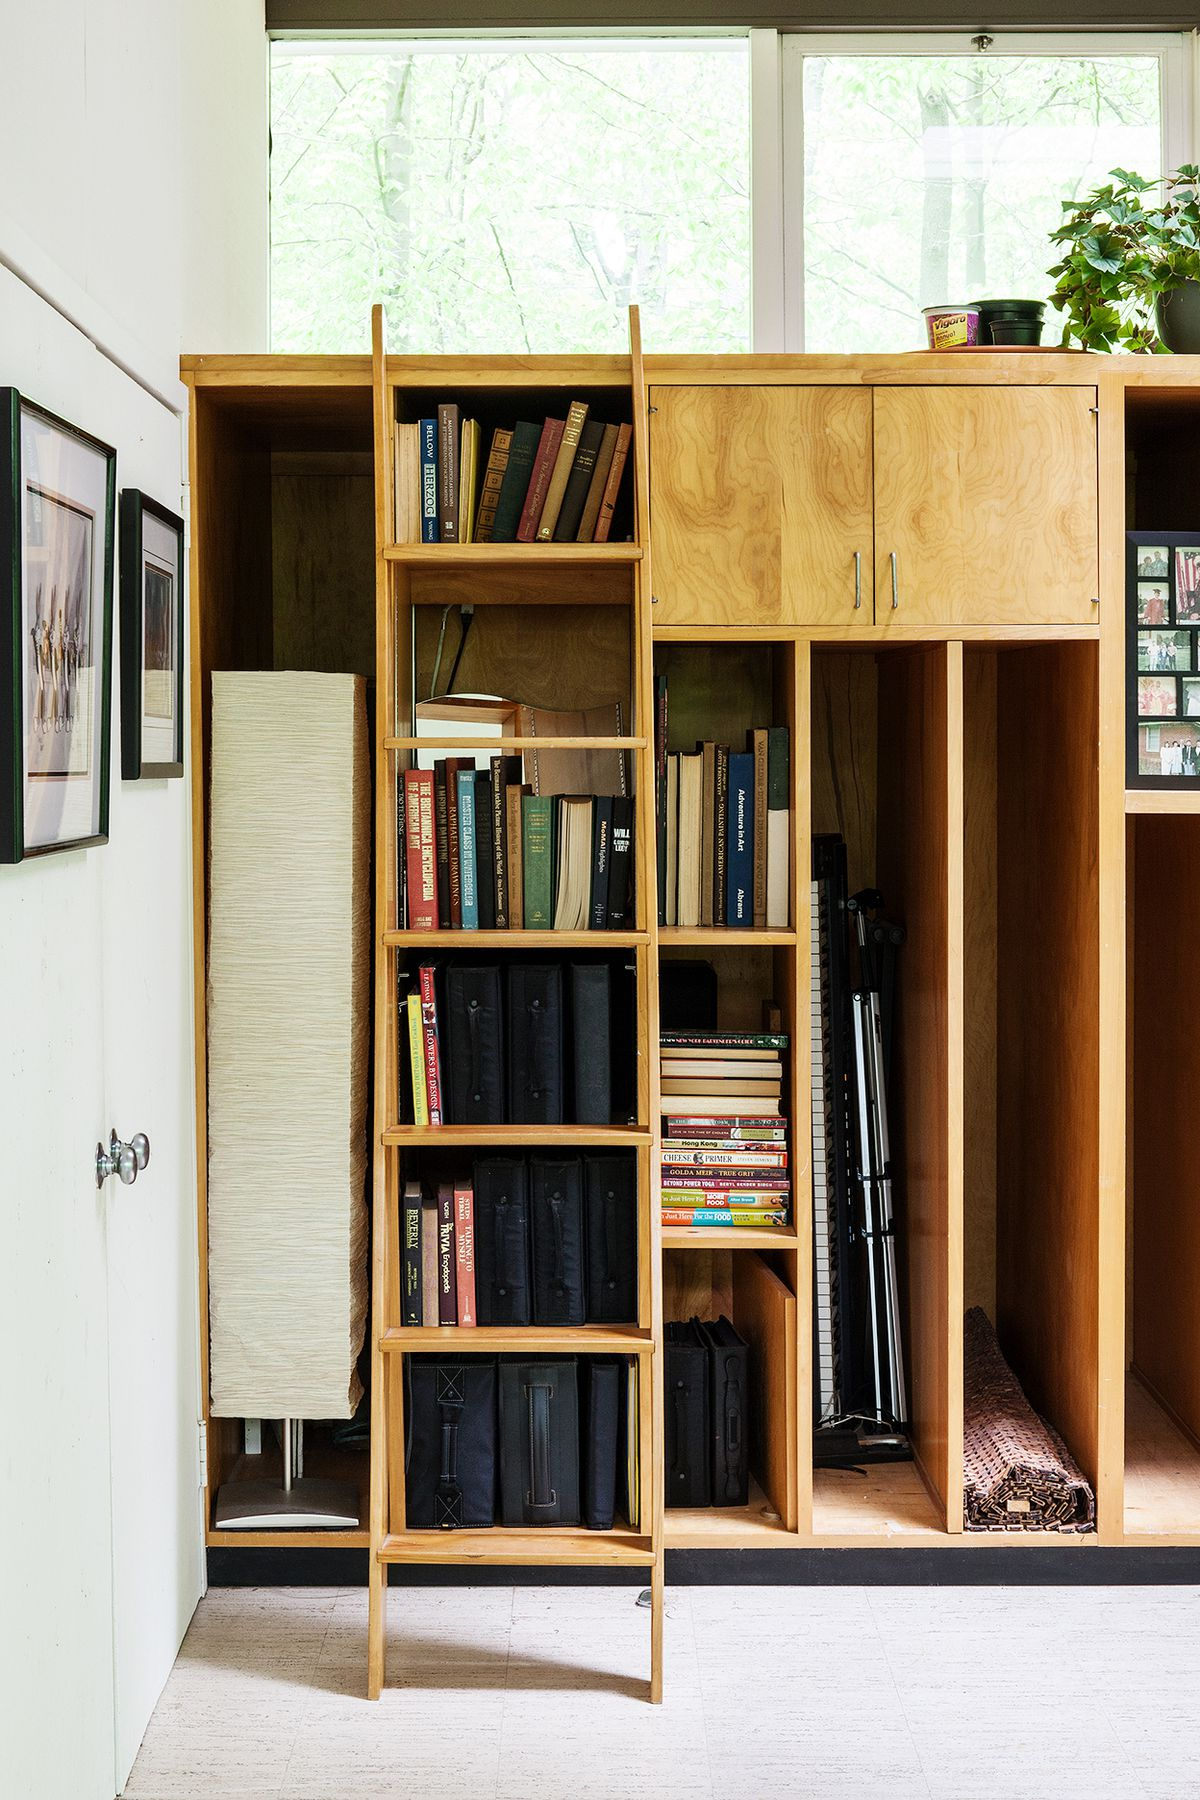 Natural wood shelves and deep cubbies were designed for art supplies and canvases. The new owners use them for books and files. A library ladder helps access upper cabinets.